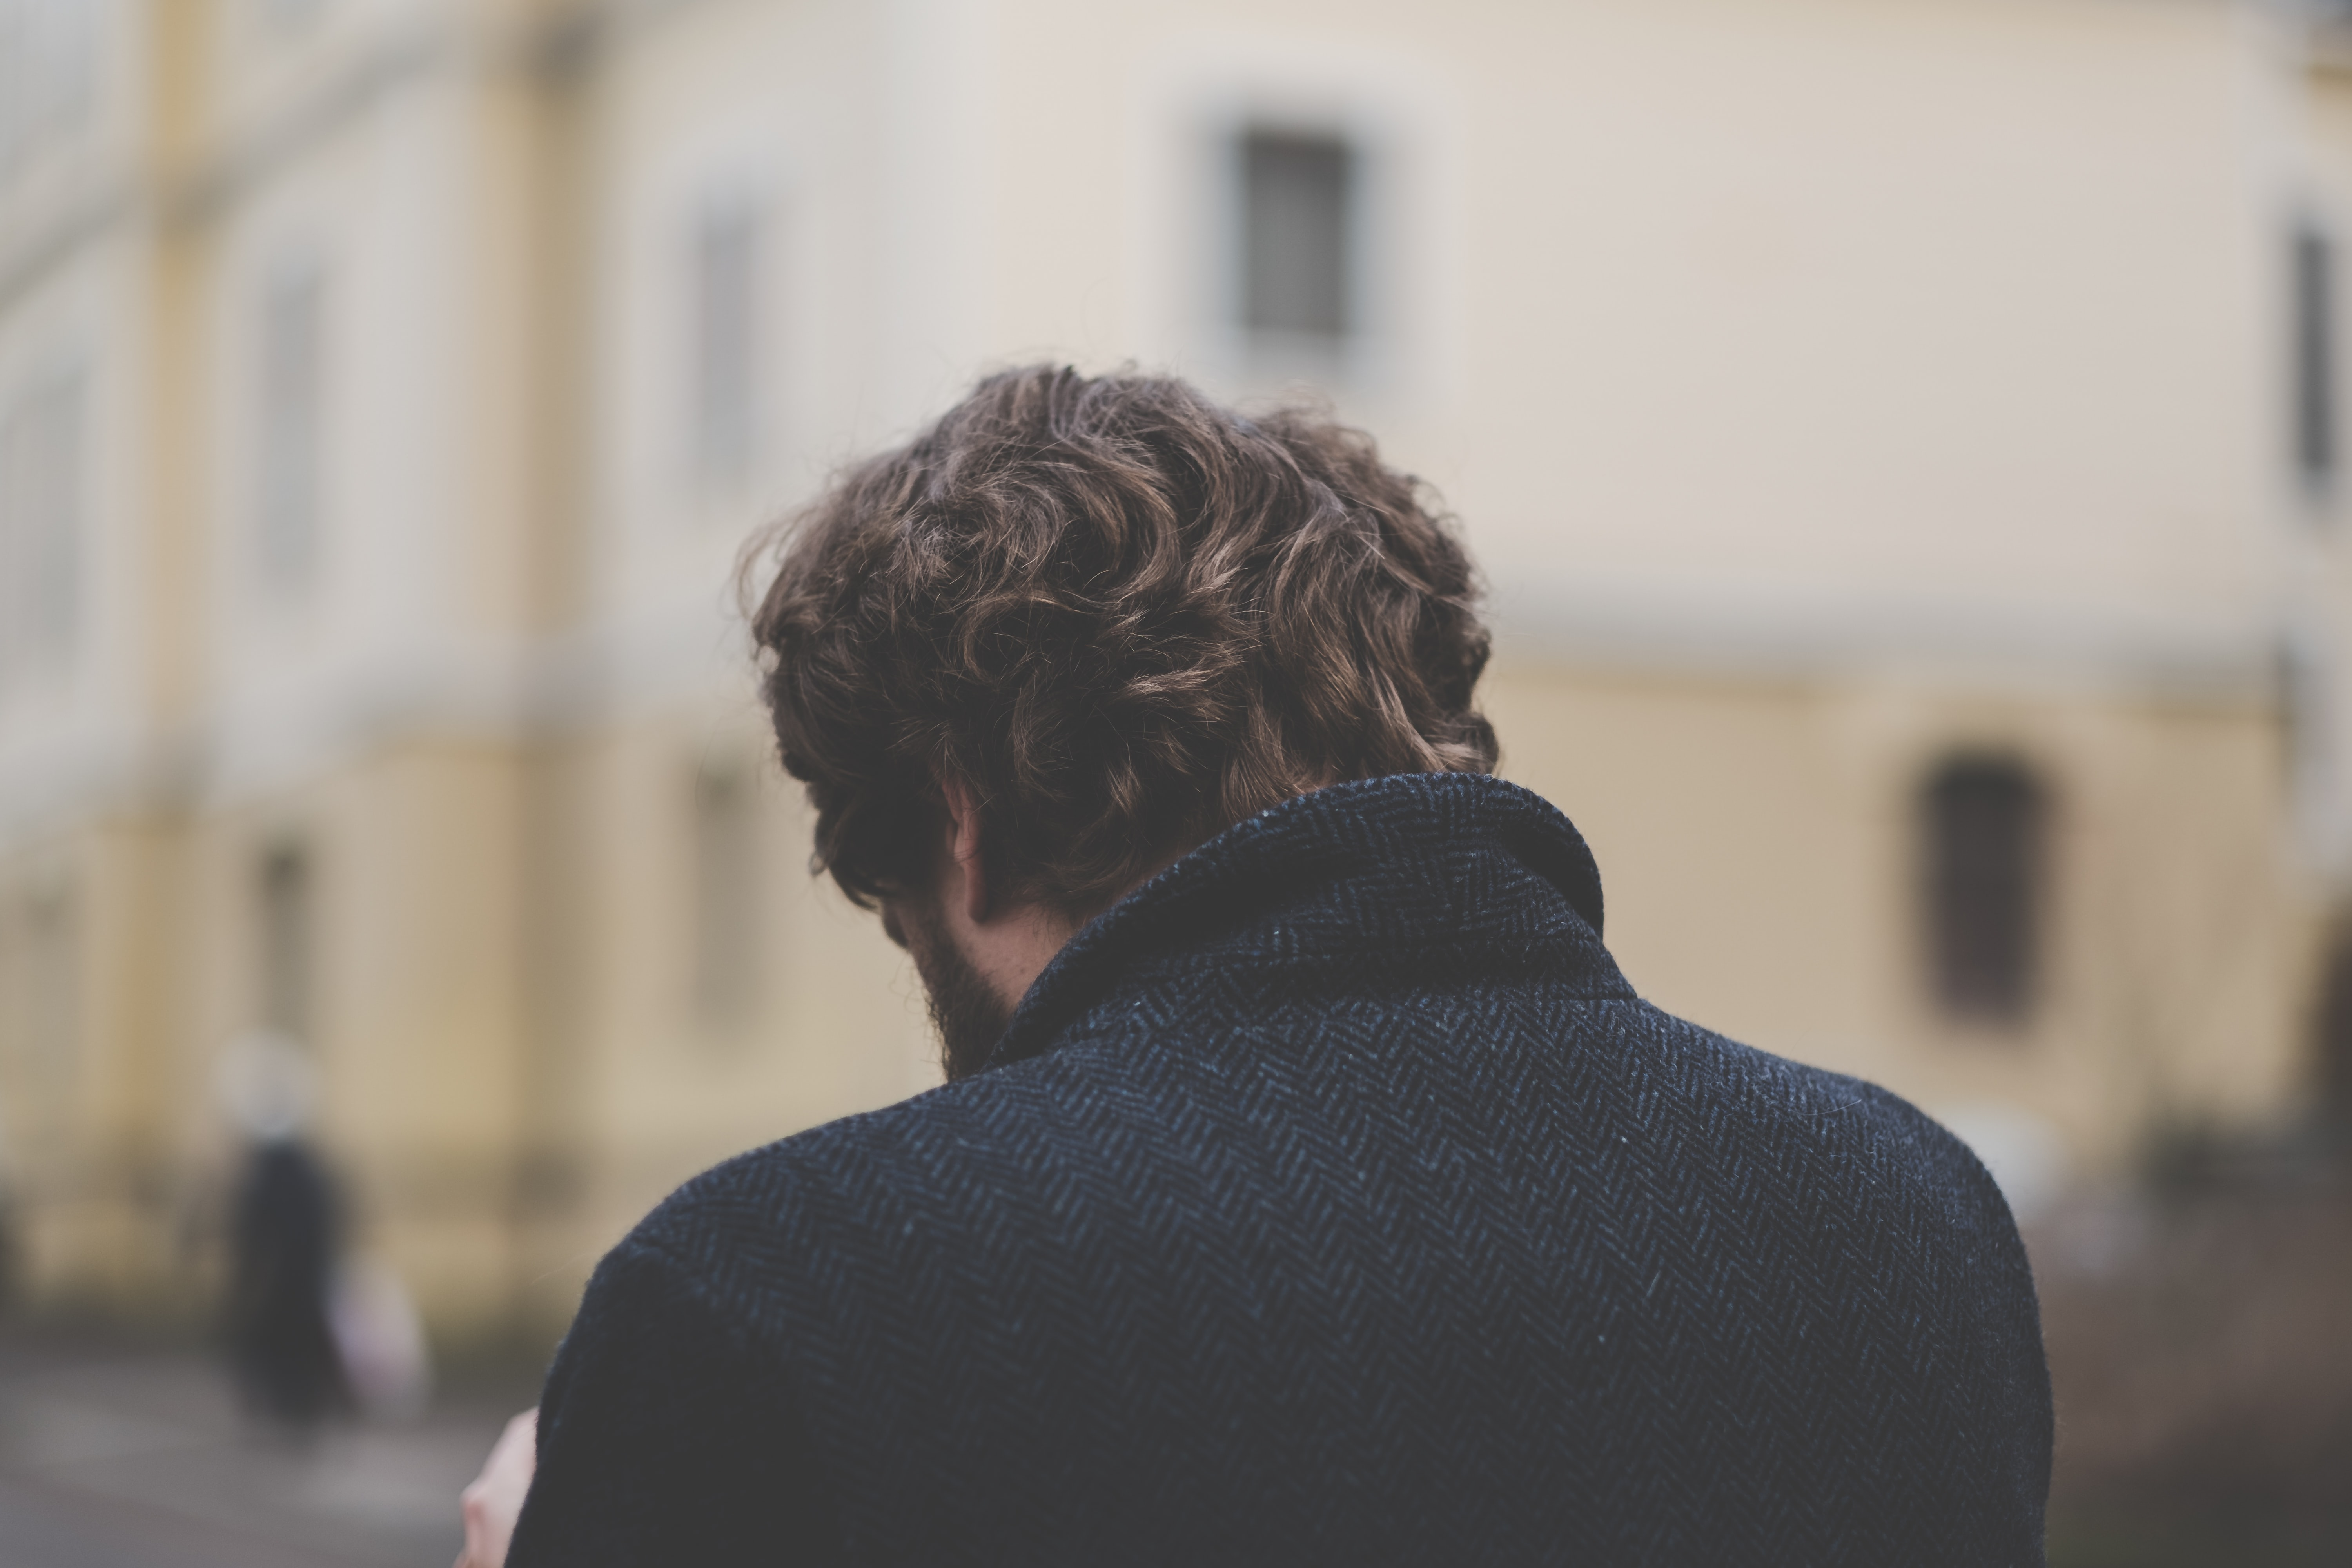 The back of a man with his head bowed, thinking, outdoors in a city